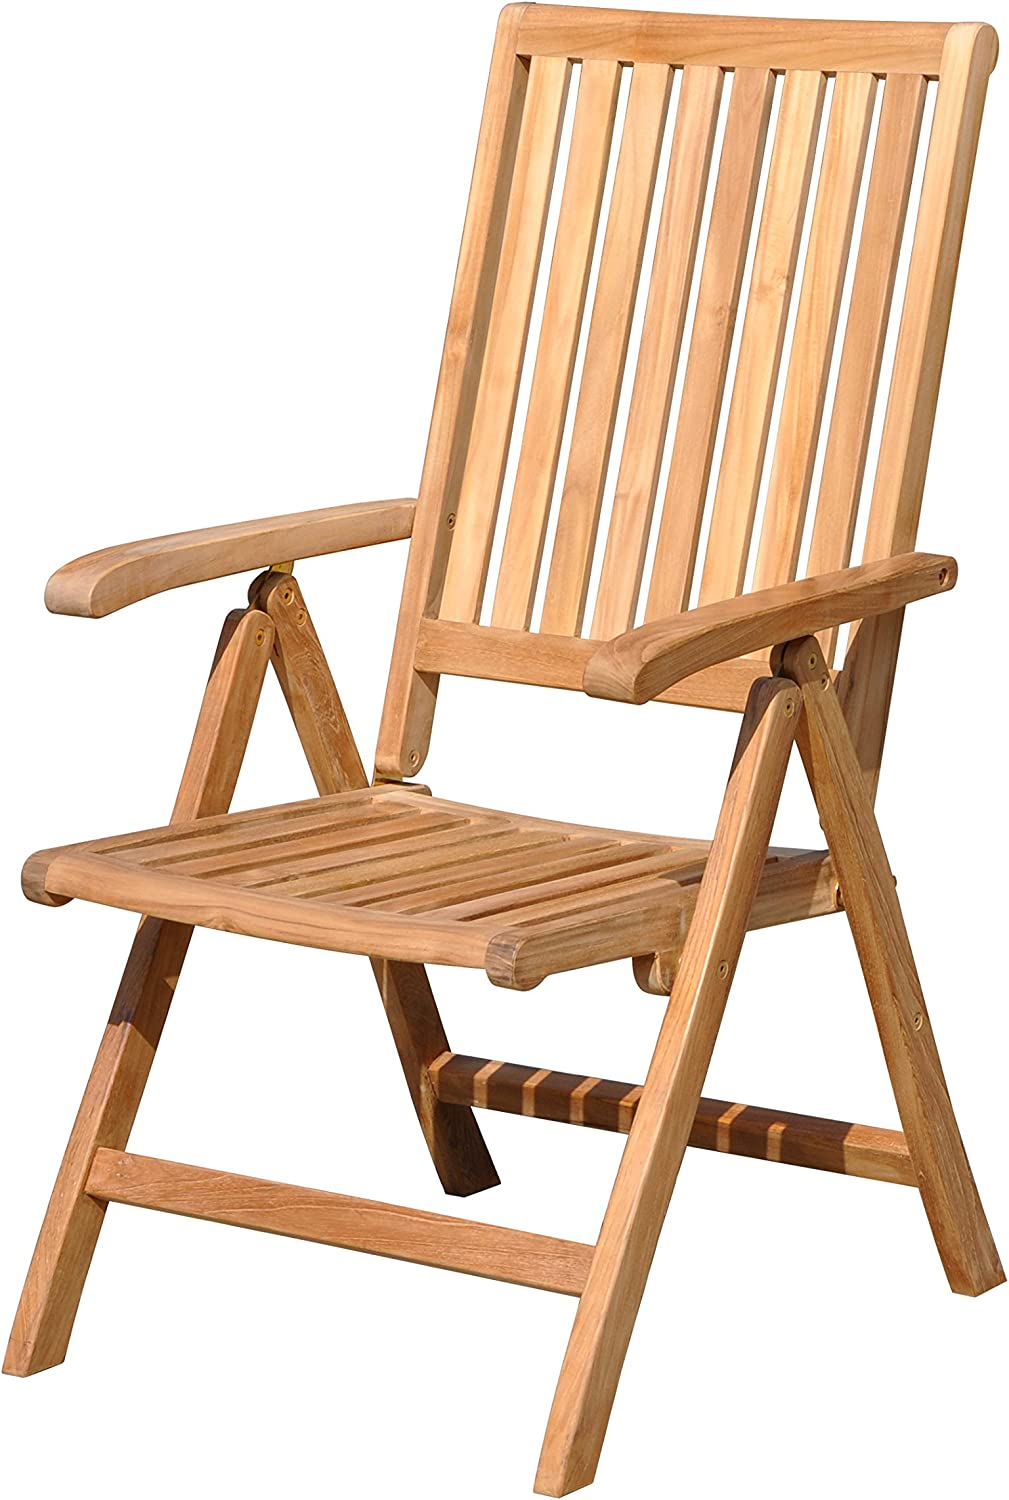 Courtyard Casual Natural Finish Teak Heritage Outdoor Chair